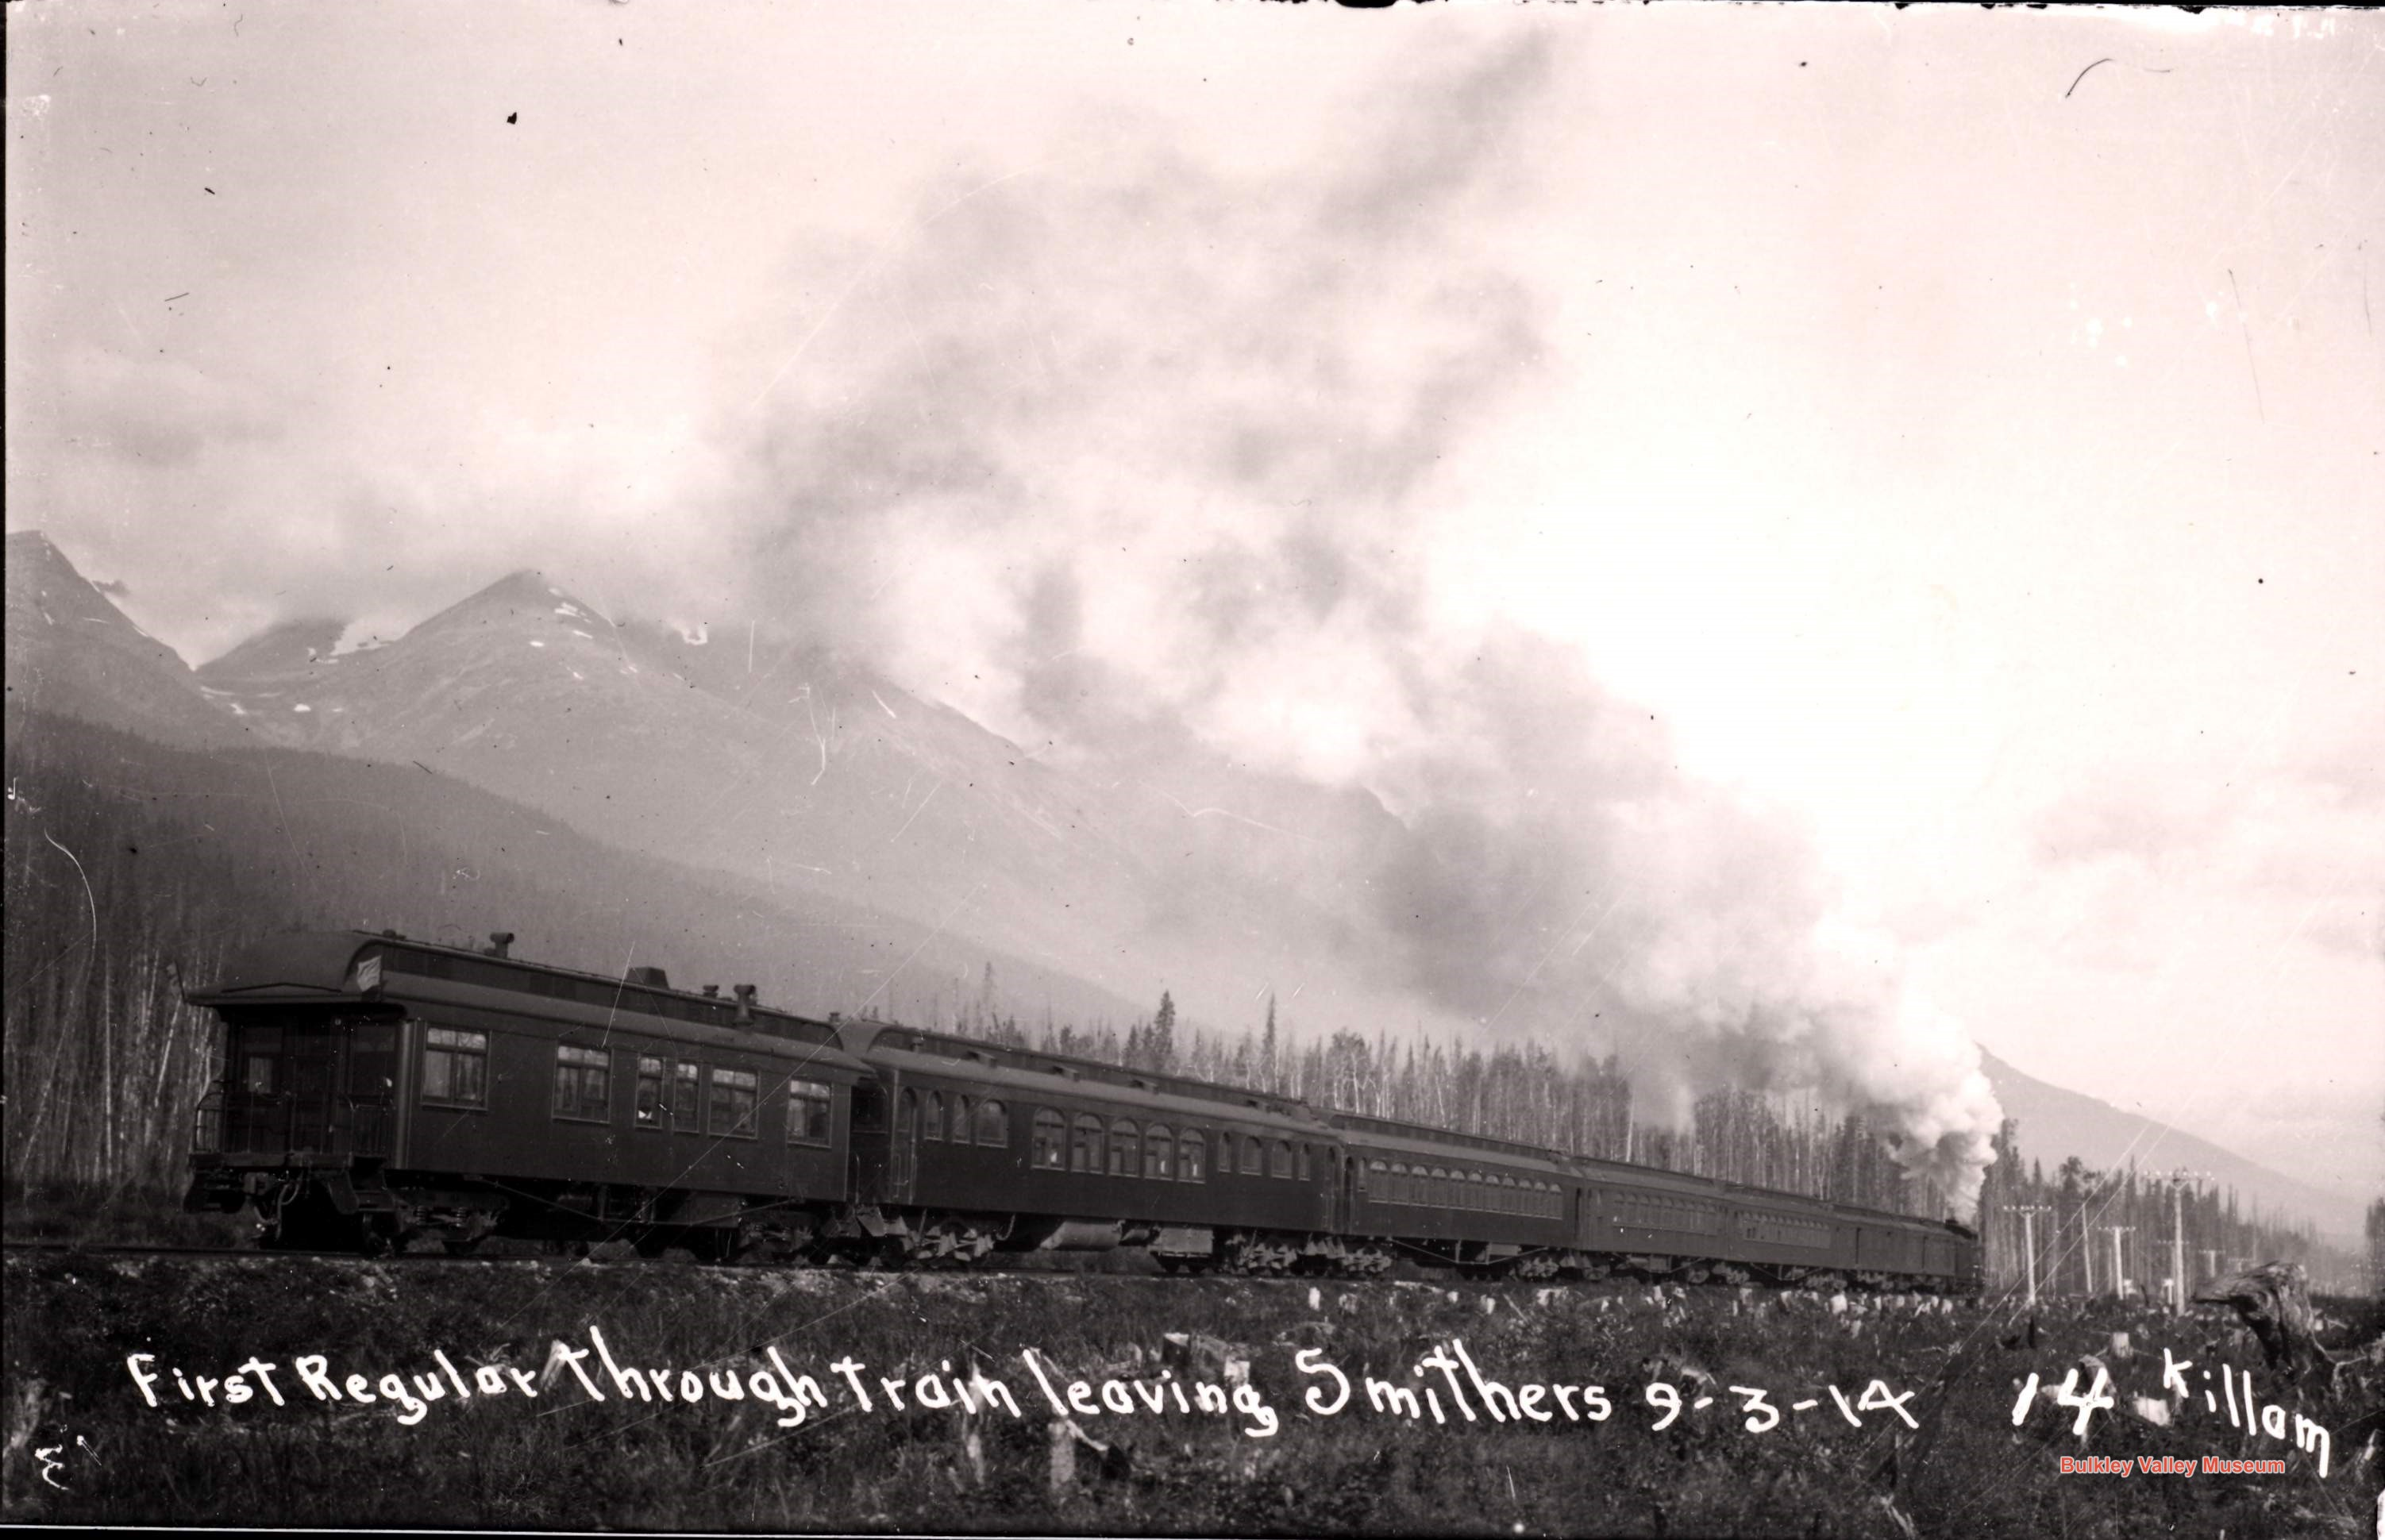 Smithers 1914